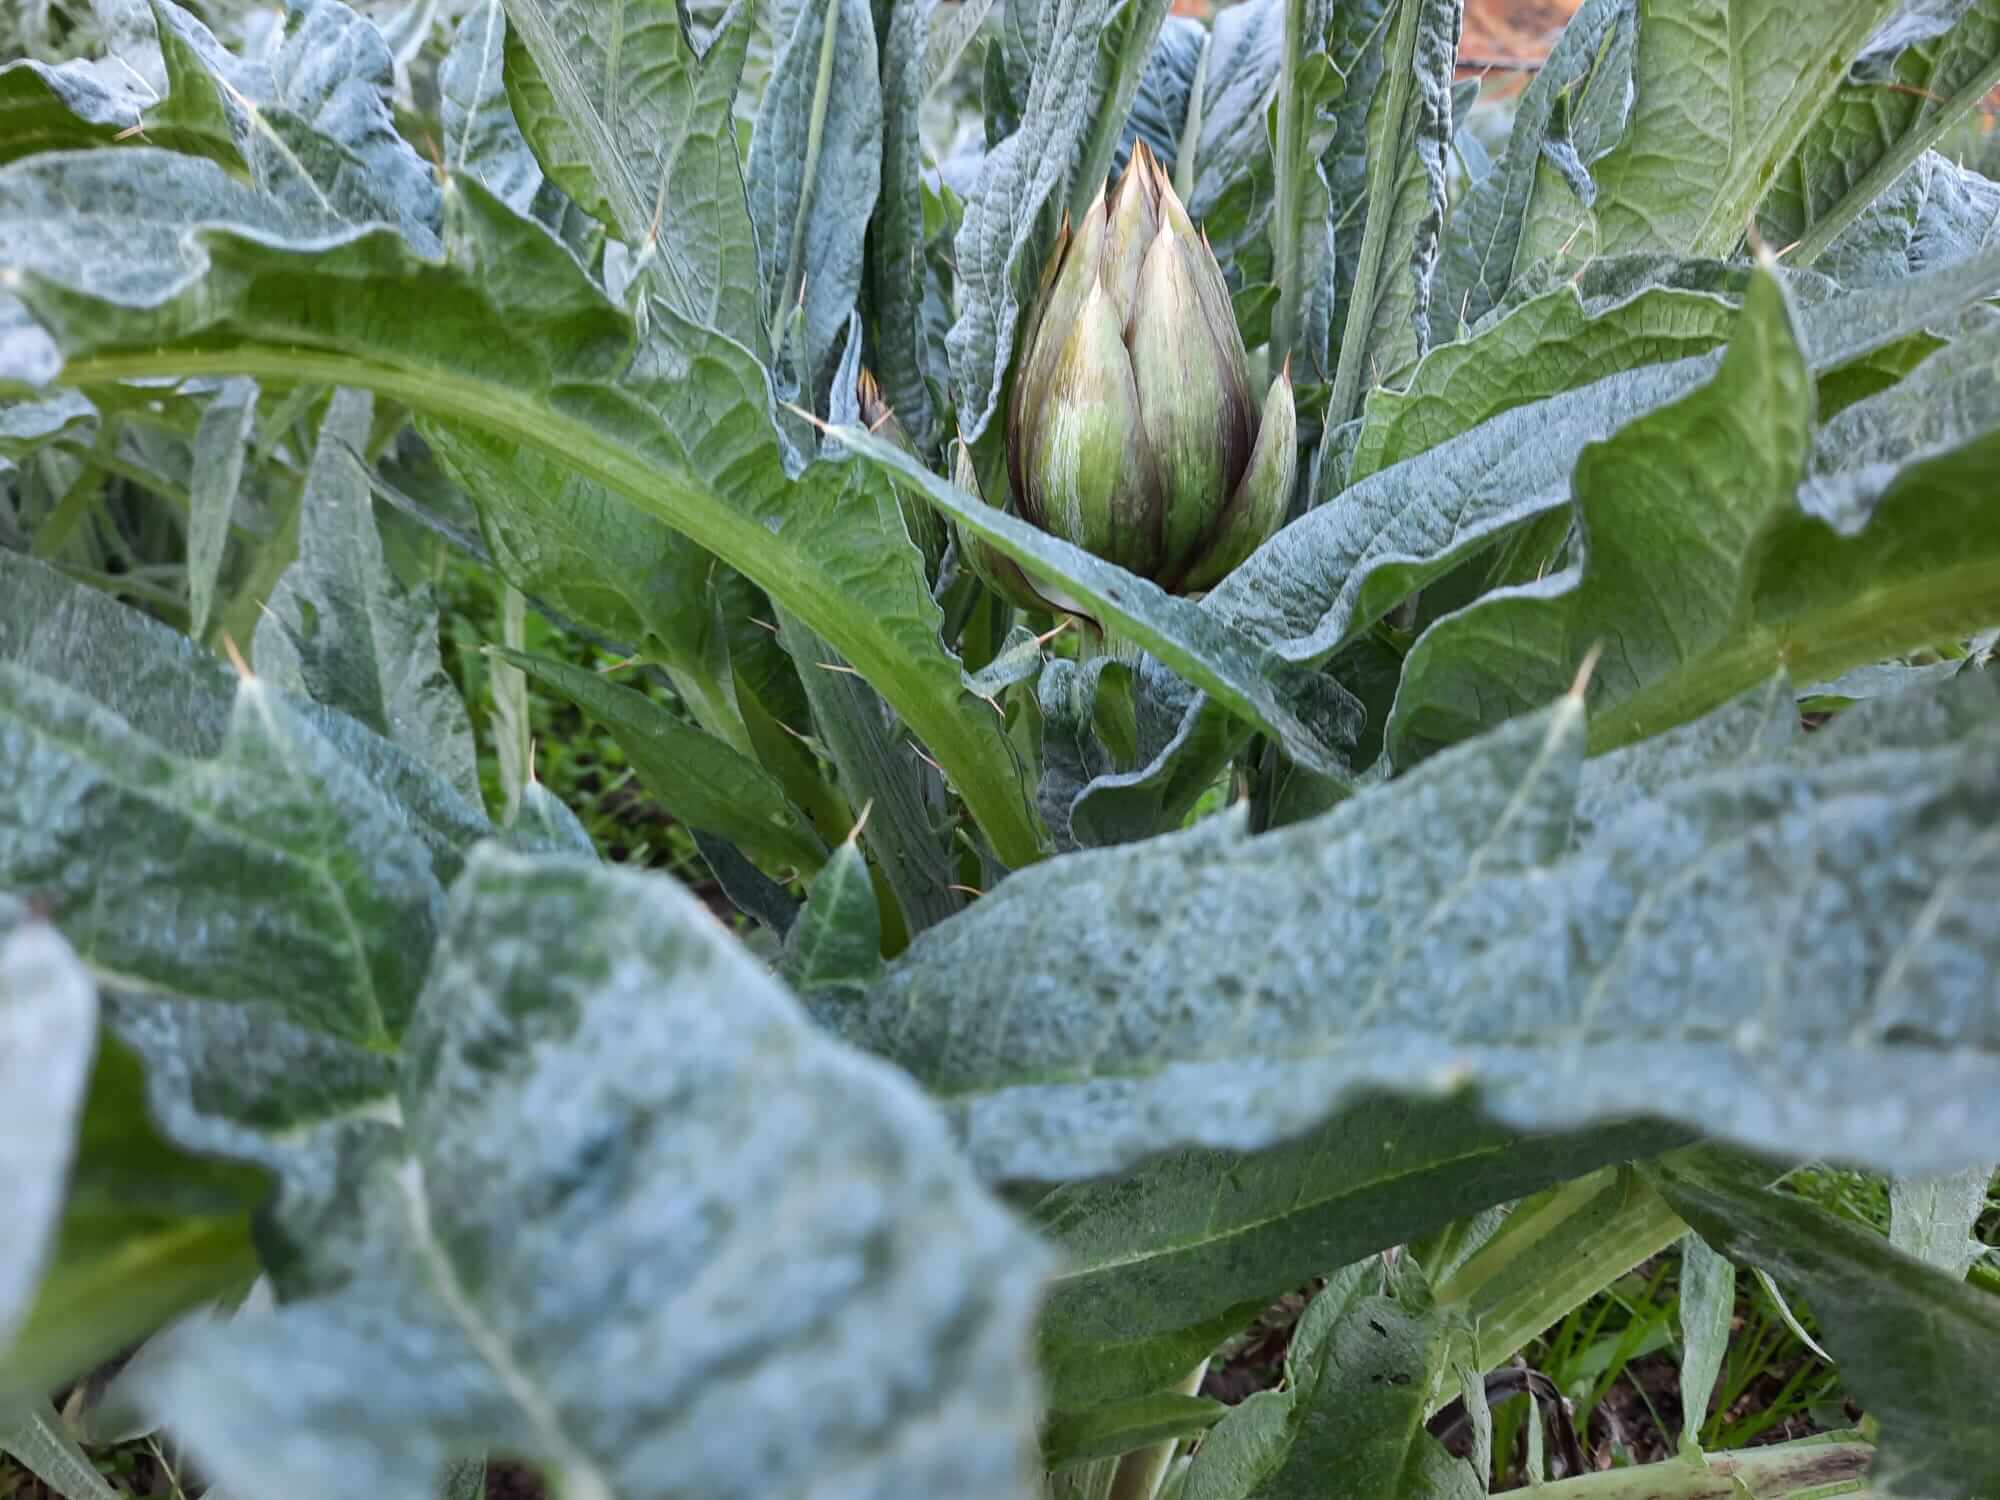 Weeding weeds around artichokes